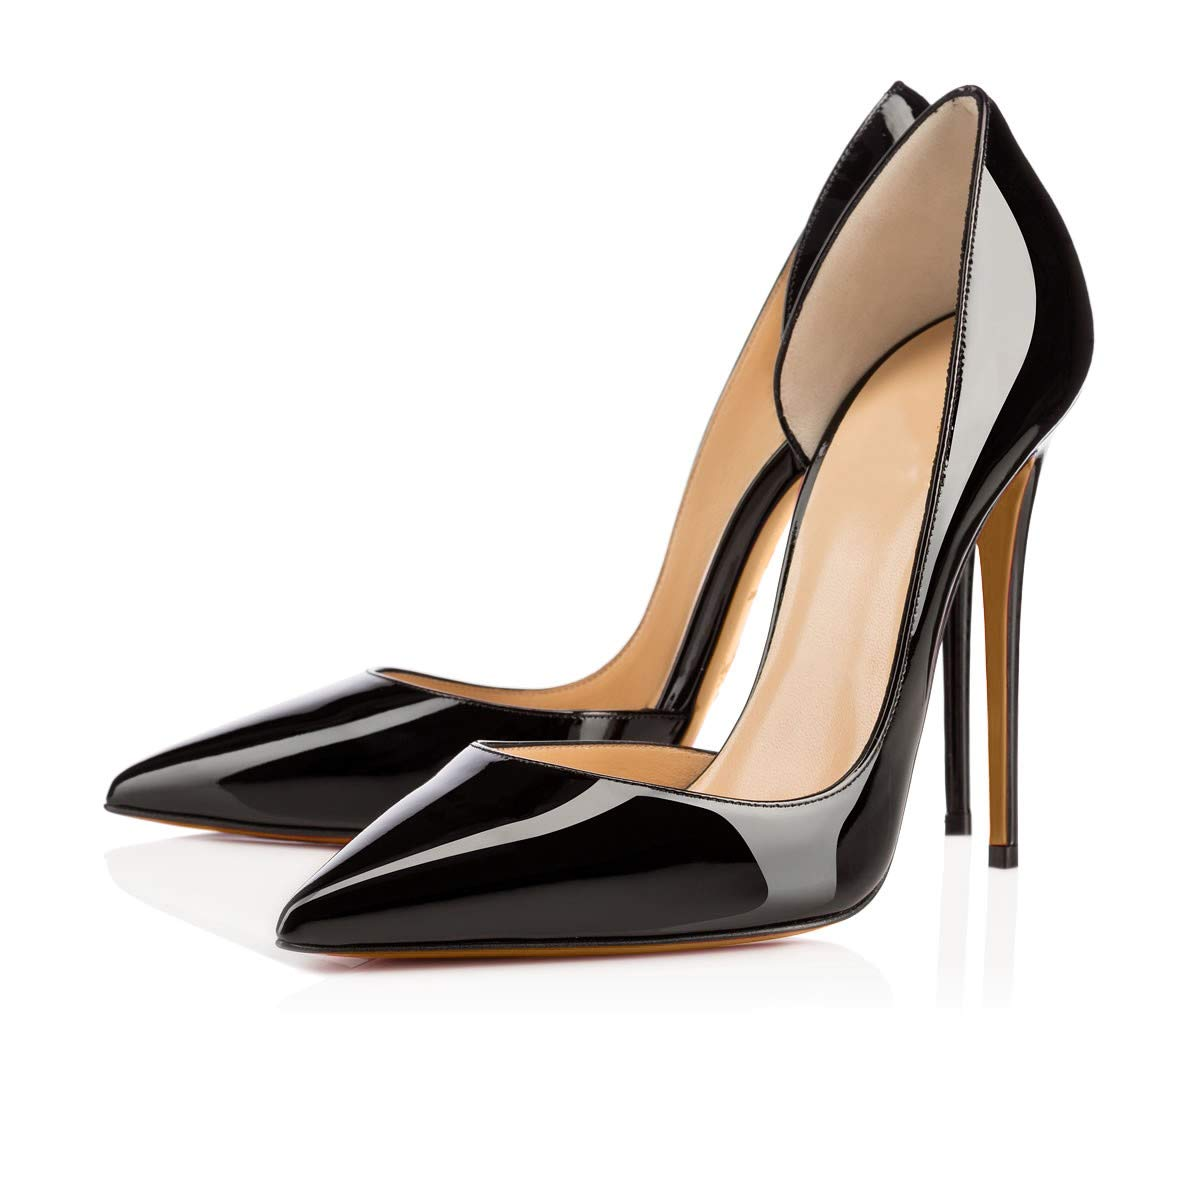 Black side-12cm CAITLIN-PAN Womens 12cm High Heels Pointed Toe Slip On Stilettos Leather Party Dress Pumps Size 5-15 US